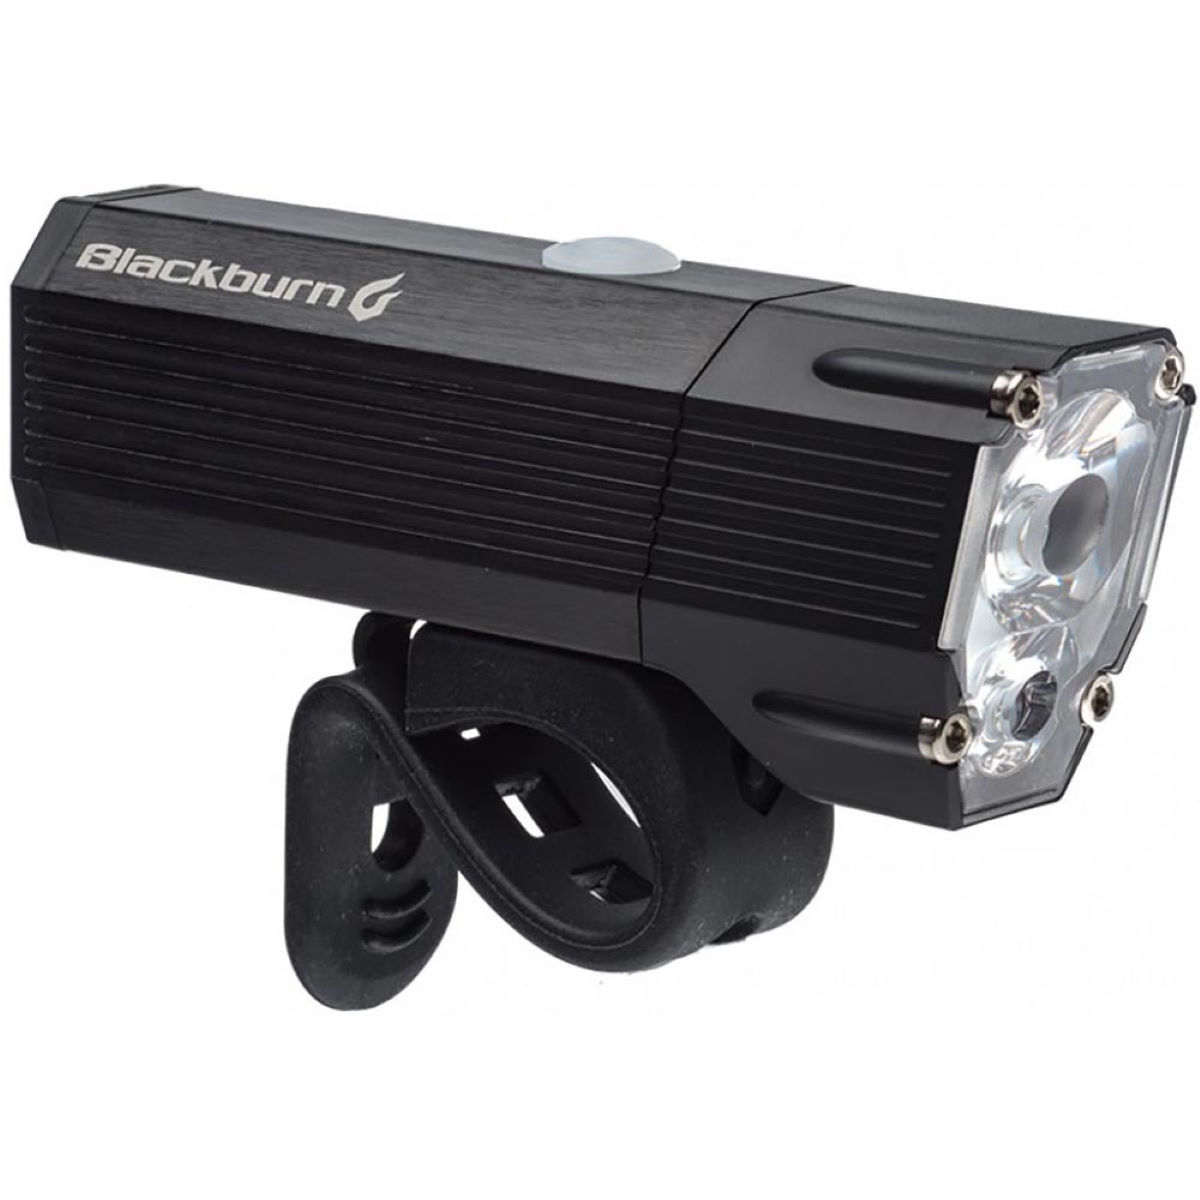 Blackburn Dayblazer 1100 Front Light - Luces delanteras